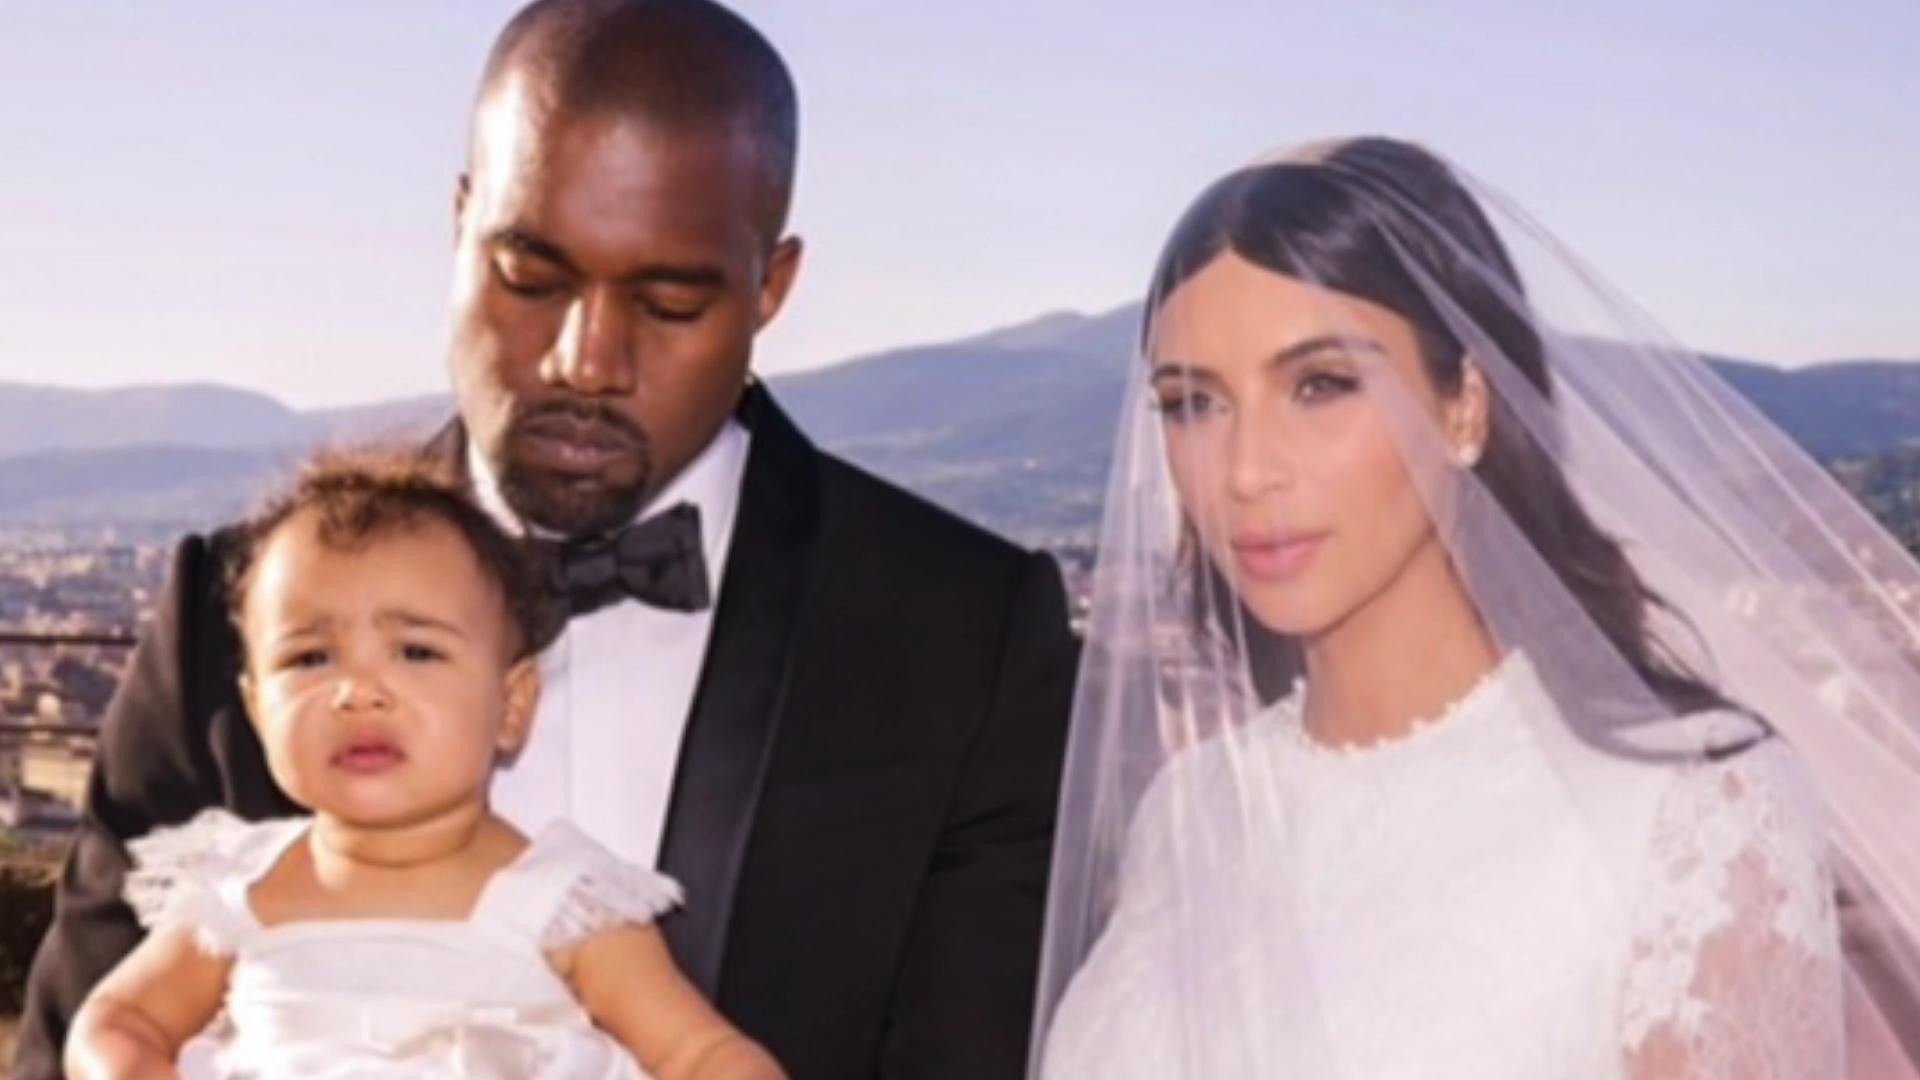 Kimye celebrate first anniversary via social media.